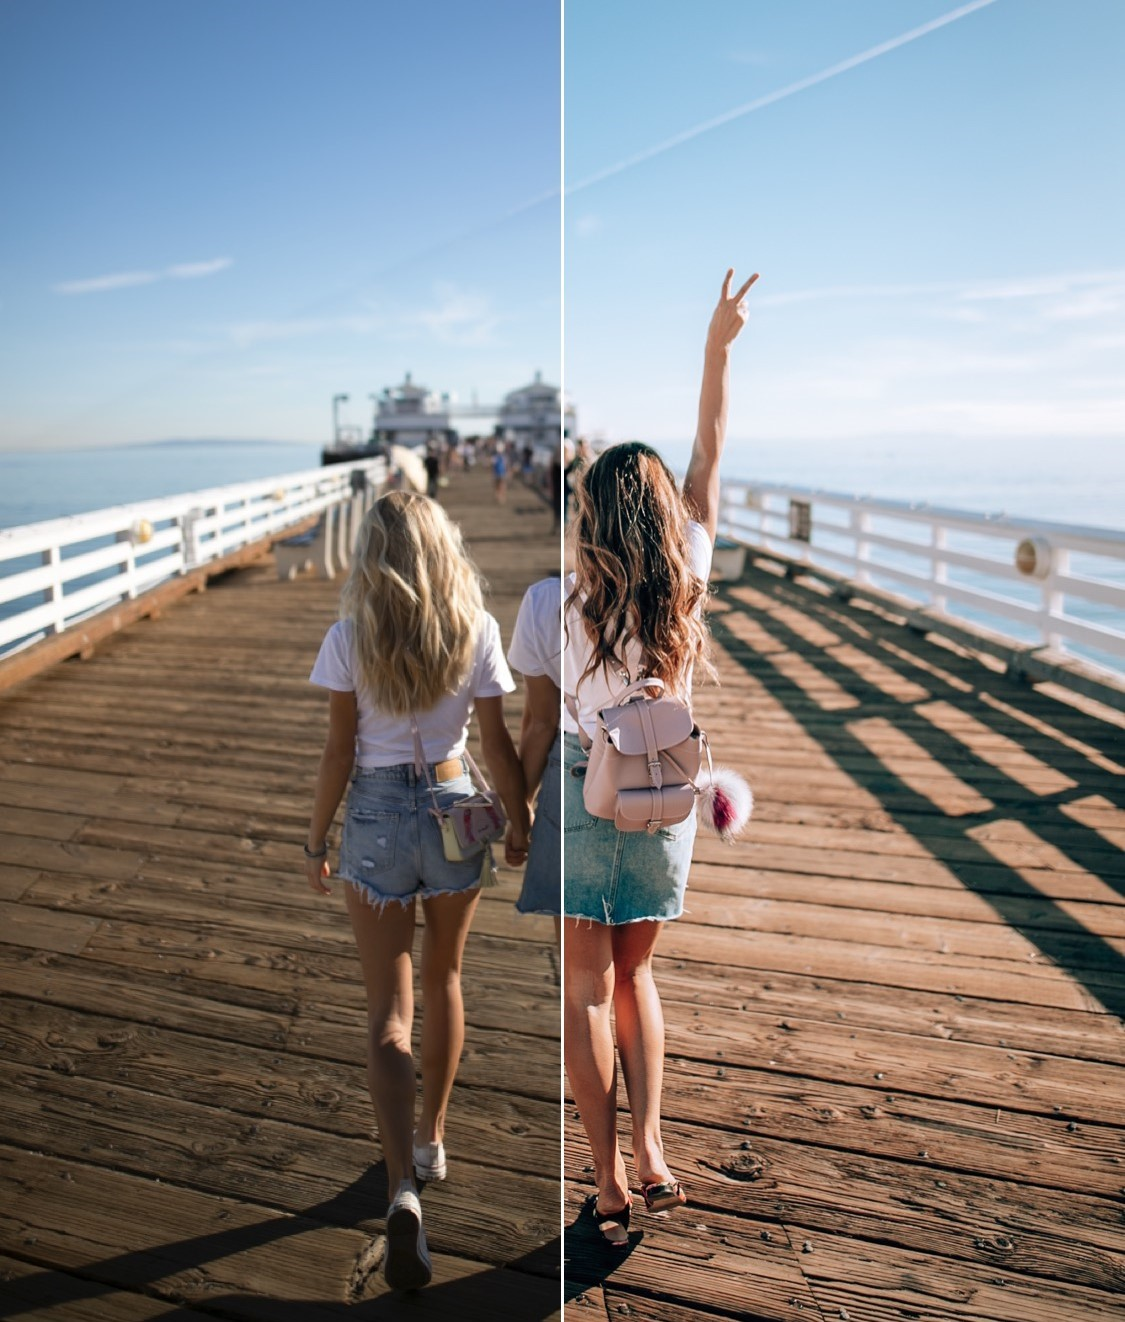 Before After lets you show before and afters of your photo edits on Instagram